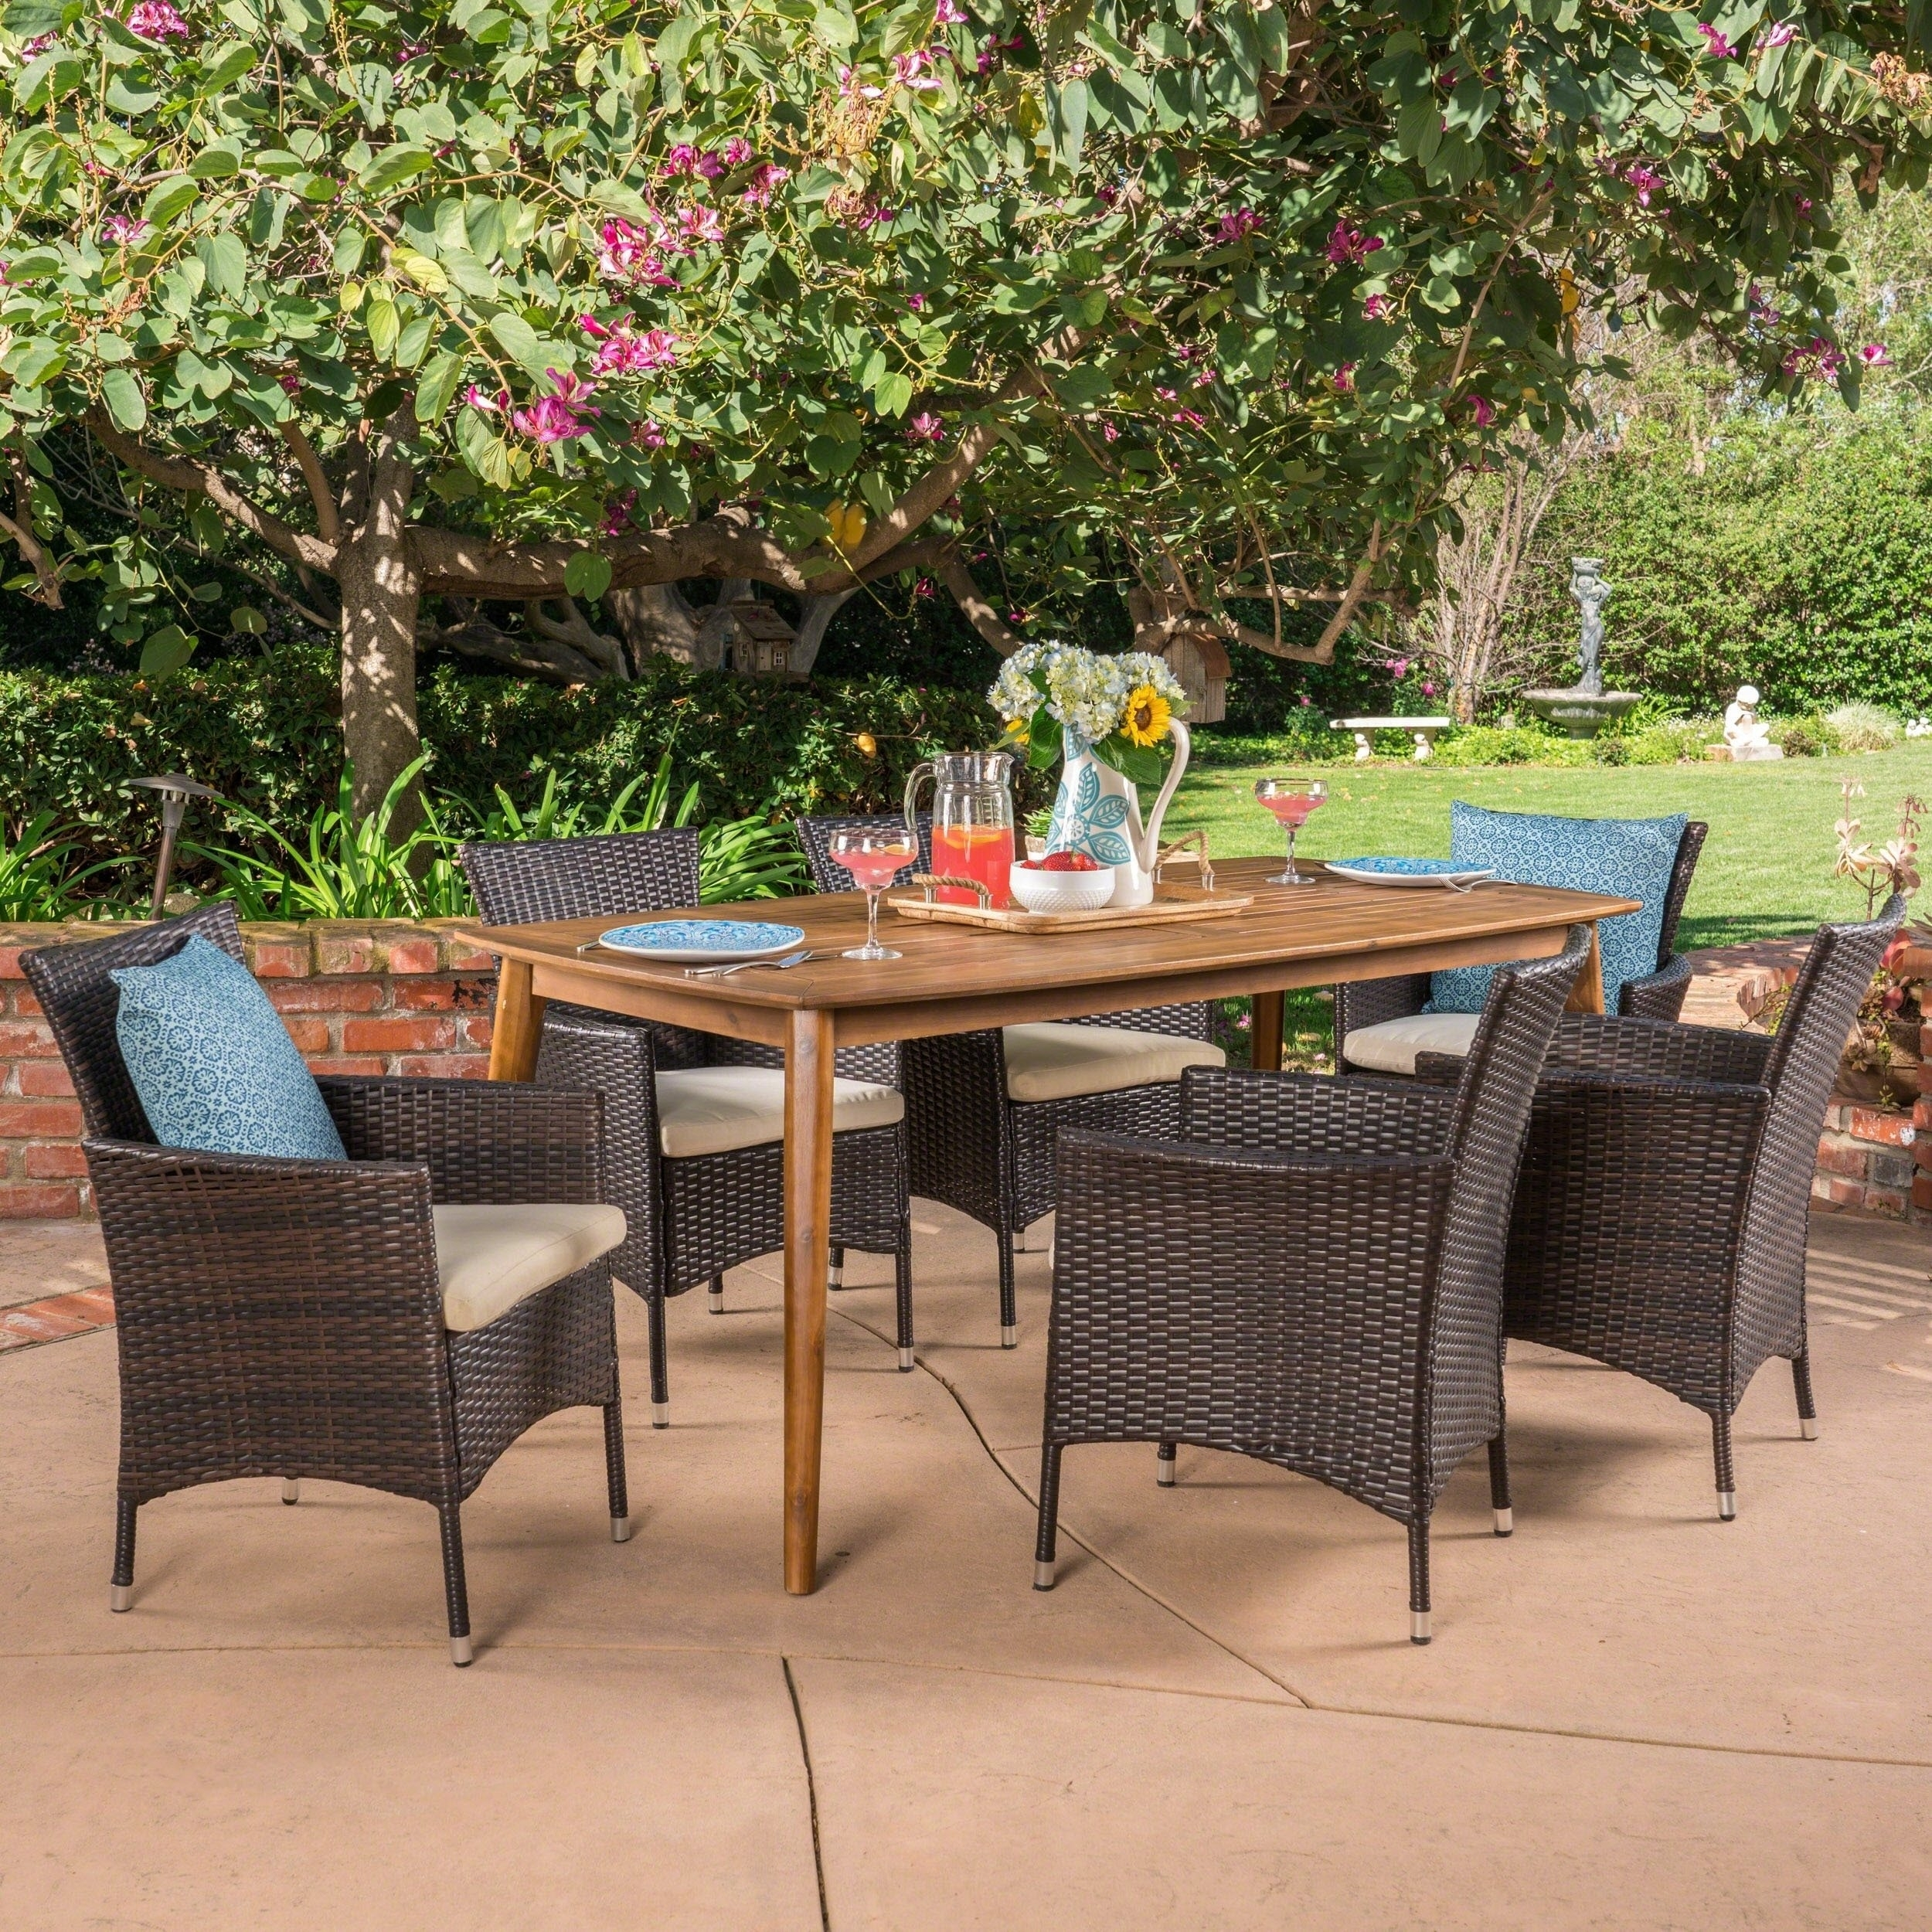 Shop Jaxon Outdoor 7 Piece Multibrown Pe Wicker Dining Set With Pertaining To Latest Jaxon Grey 6 Piece Rectangle Extension Dining Sets With Bench & Wood Chairs (Photo 8 of 20)